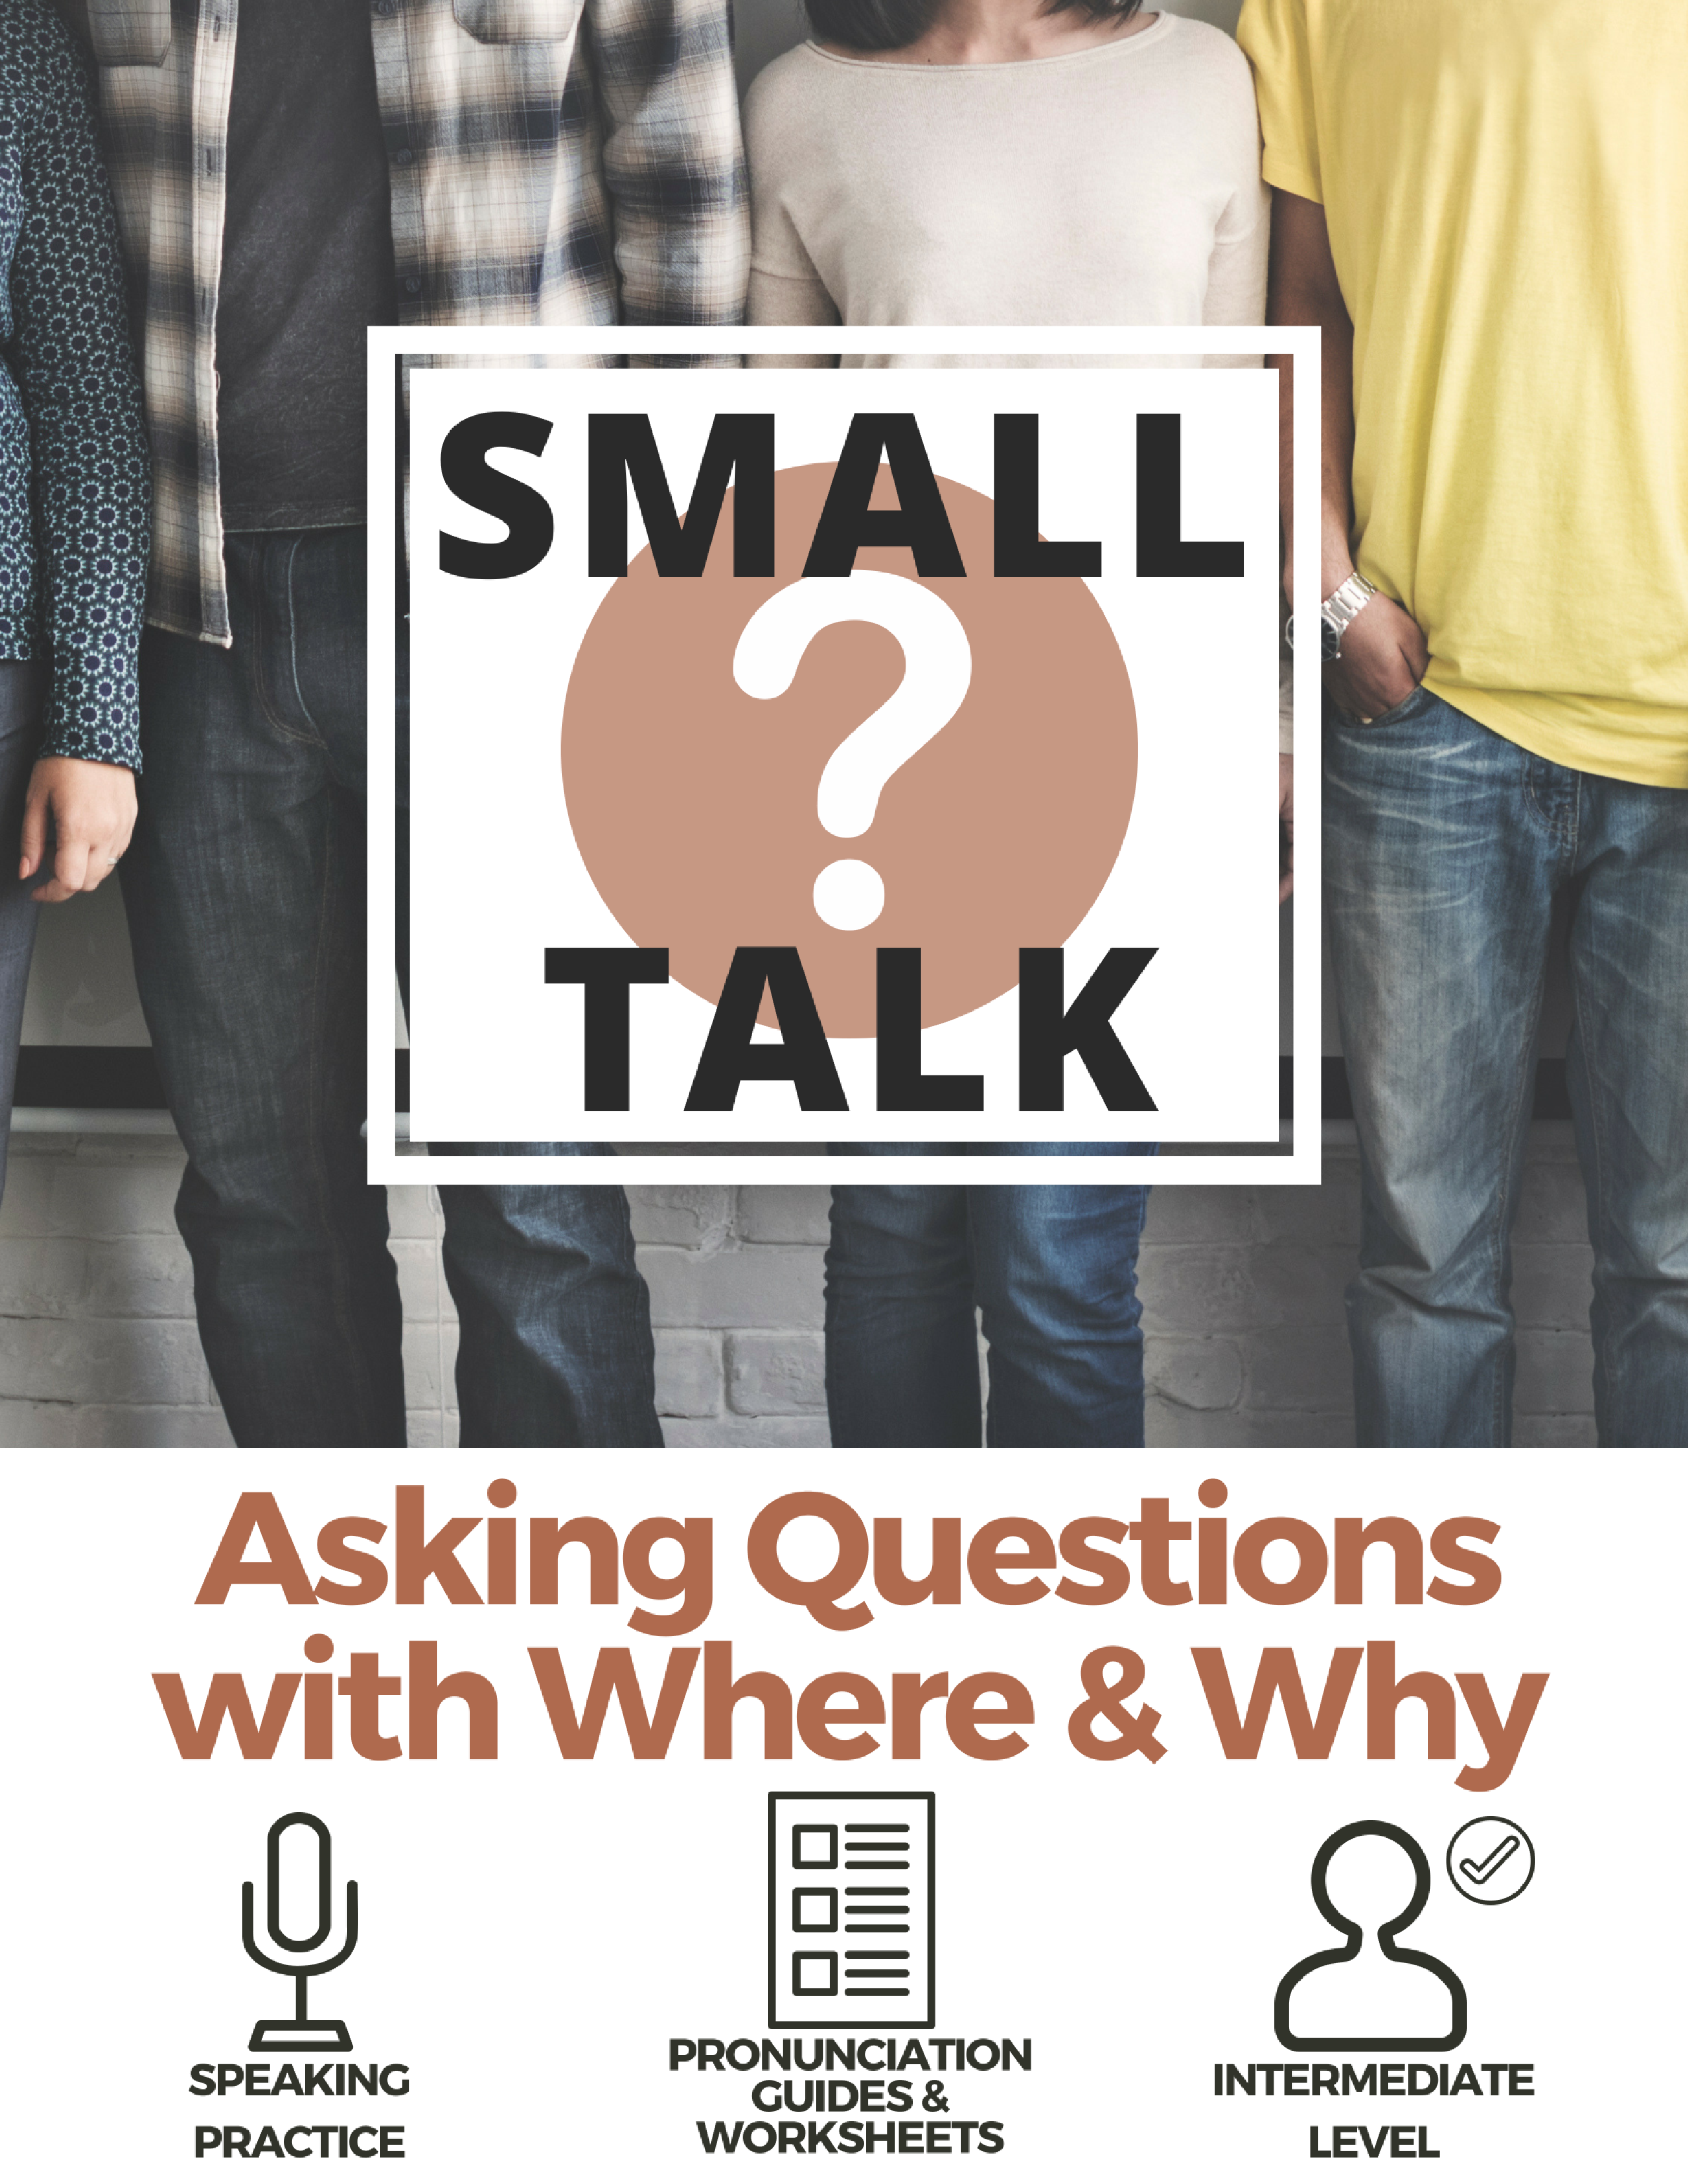 Small talk dating questions